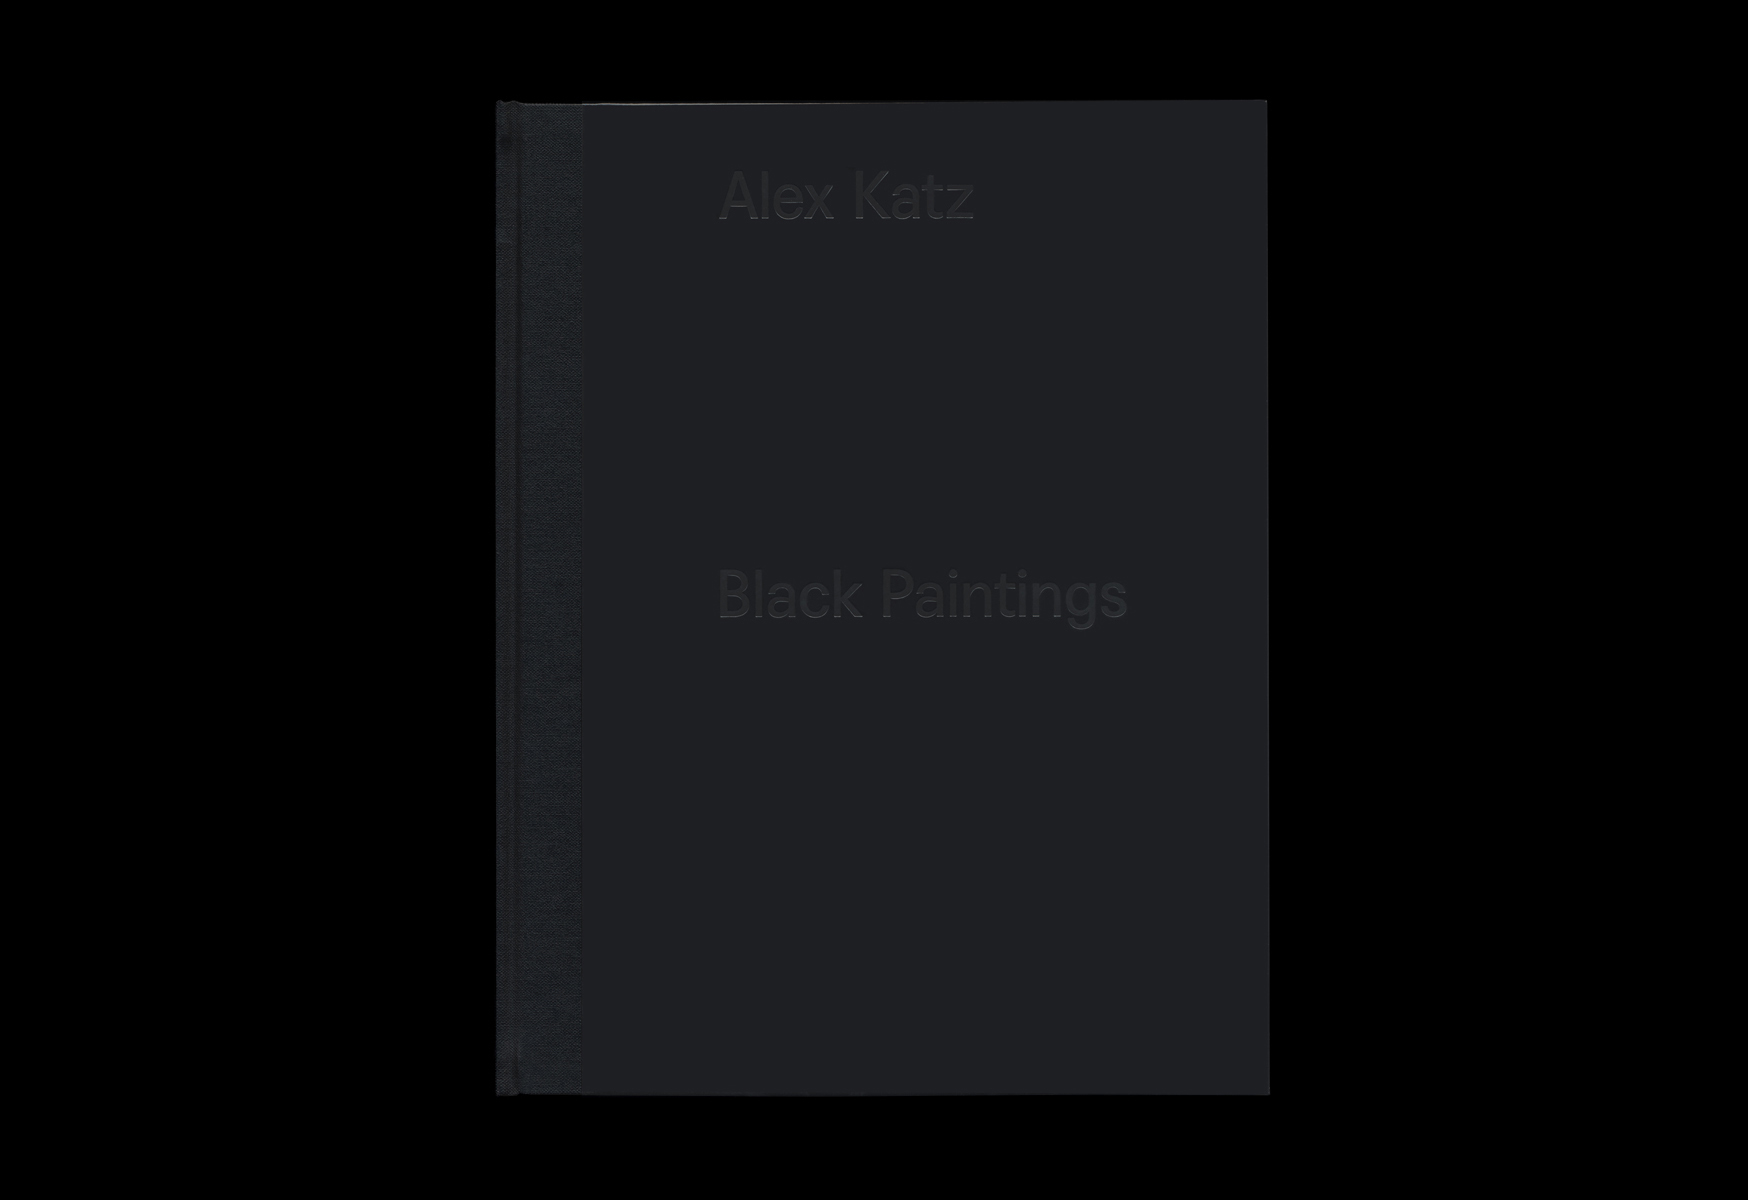 wayne_daly_2015_alex_katz_cover_1748px